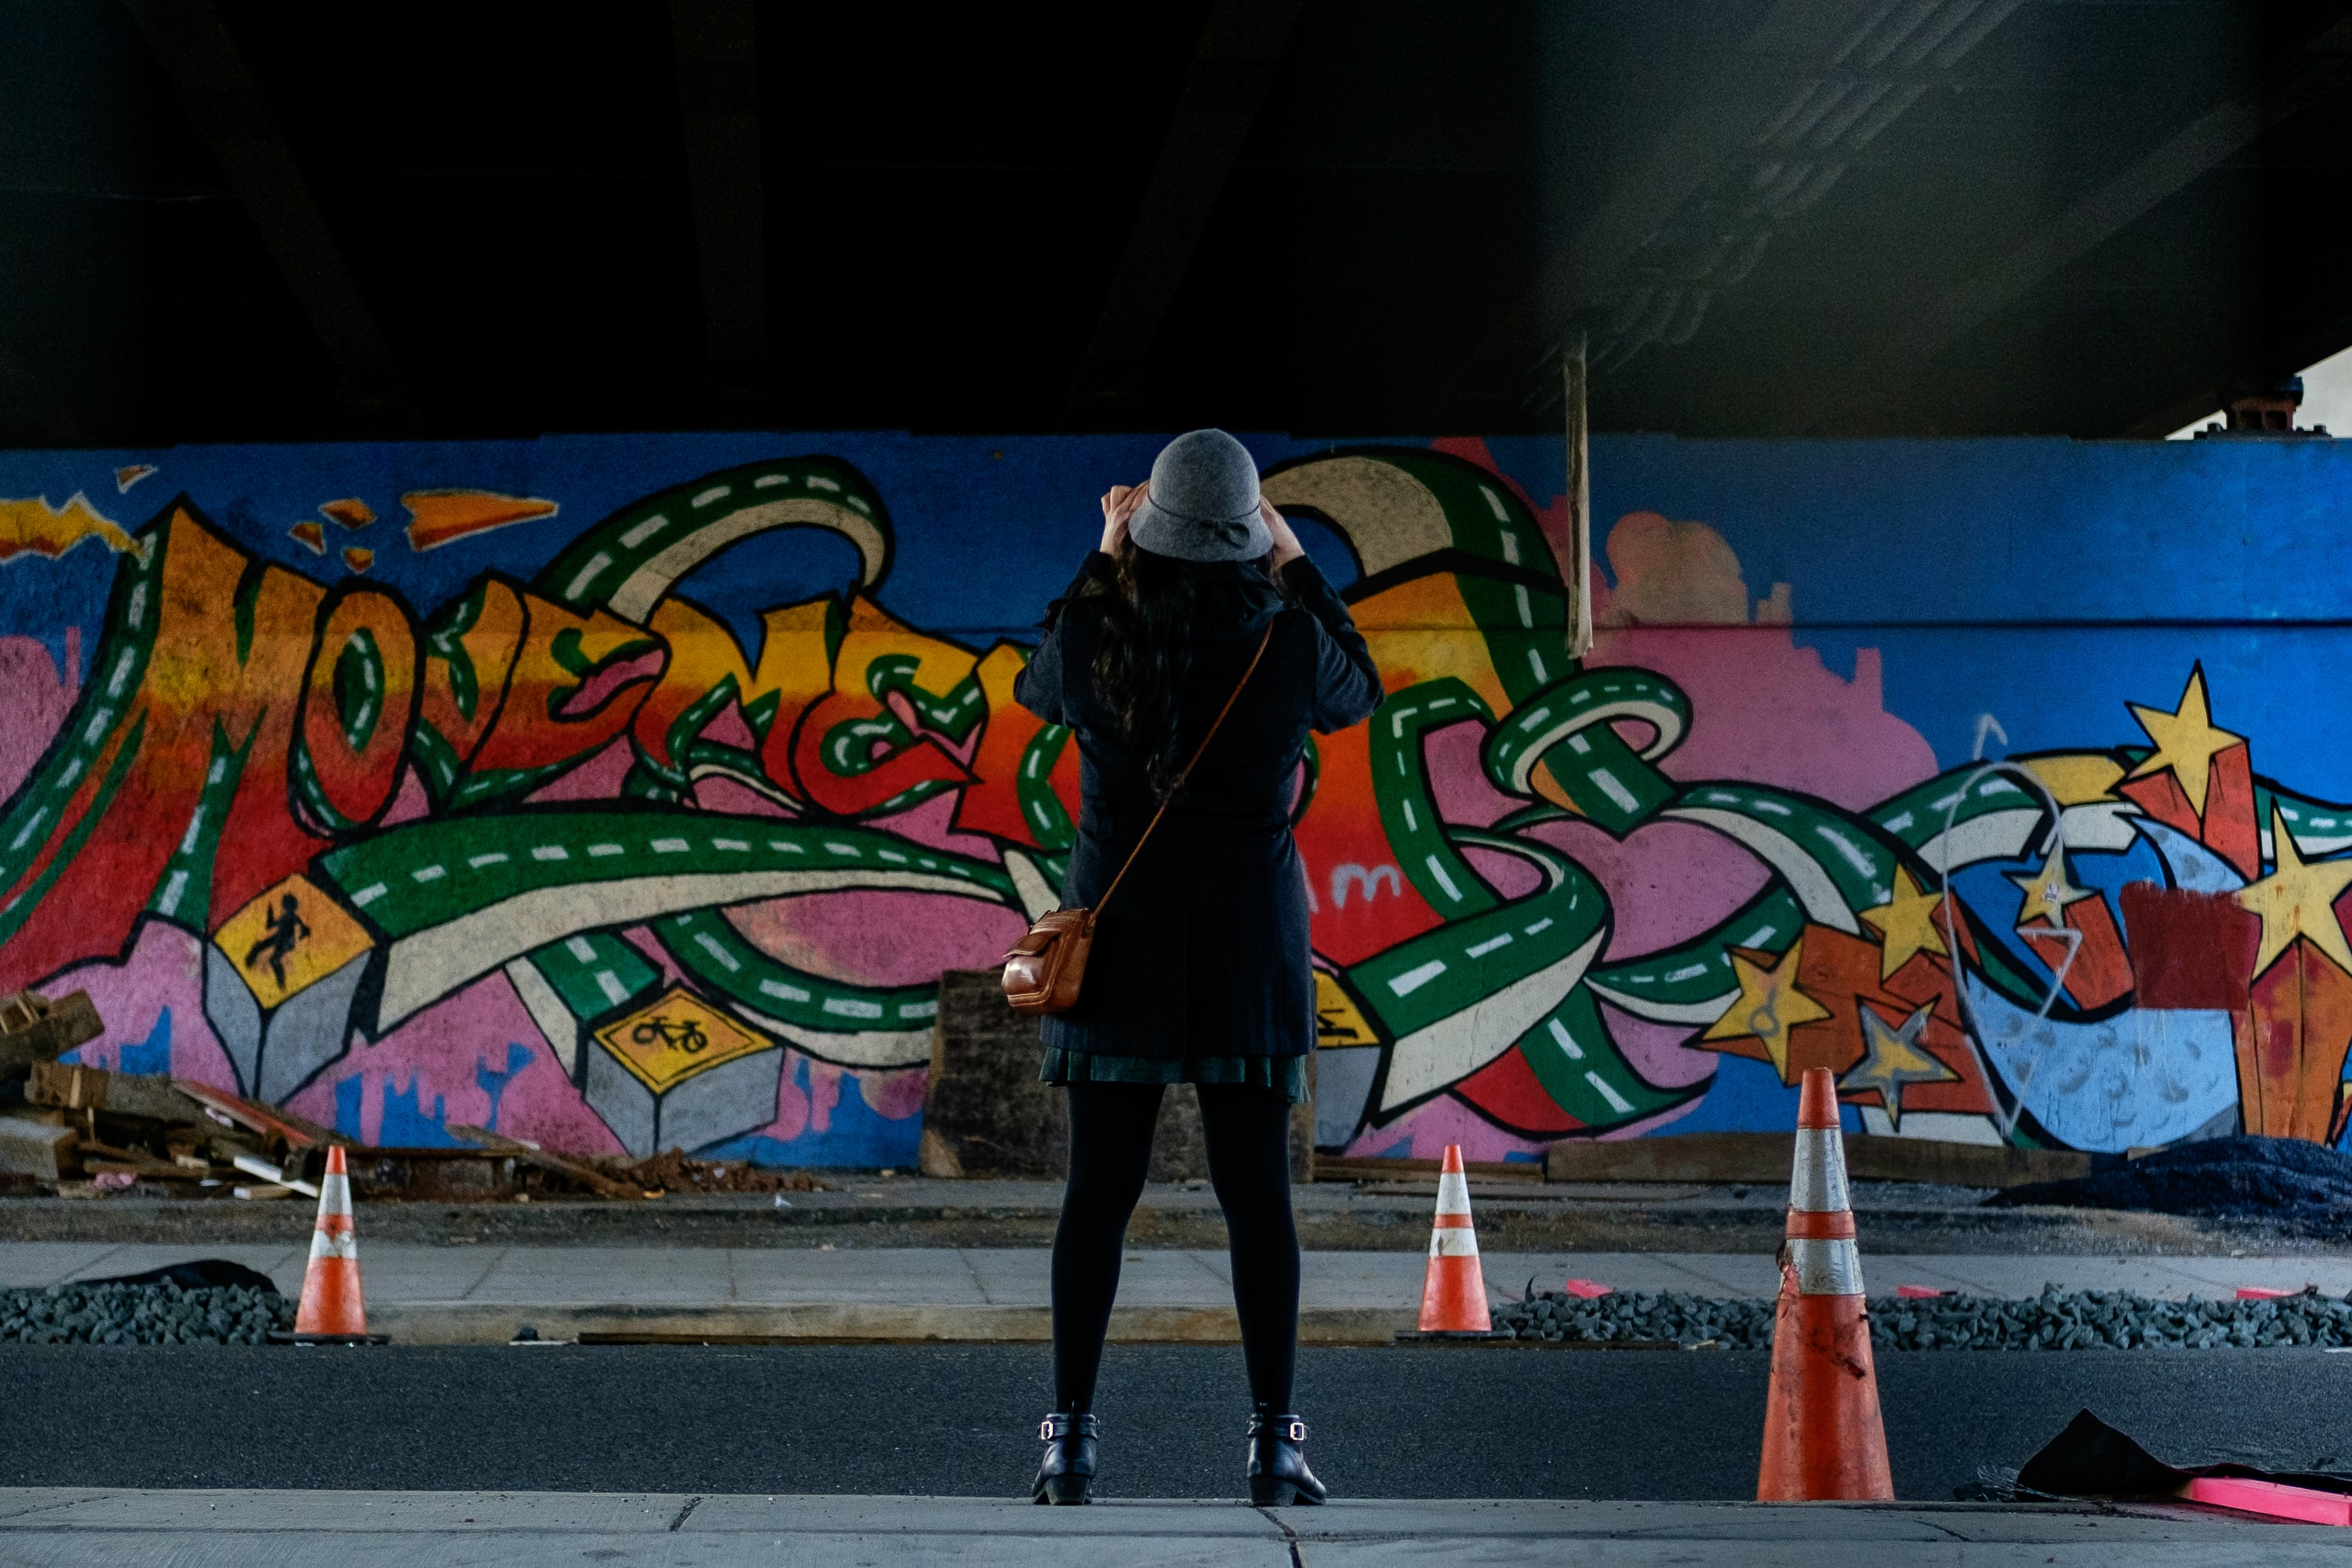 Woman in felt hat with traffic cones viewing colorful graffiti street art, Rhode Island Avenue Northwest